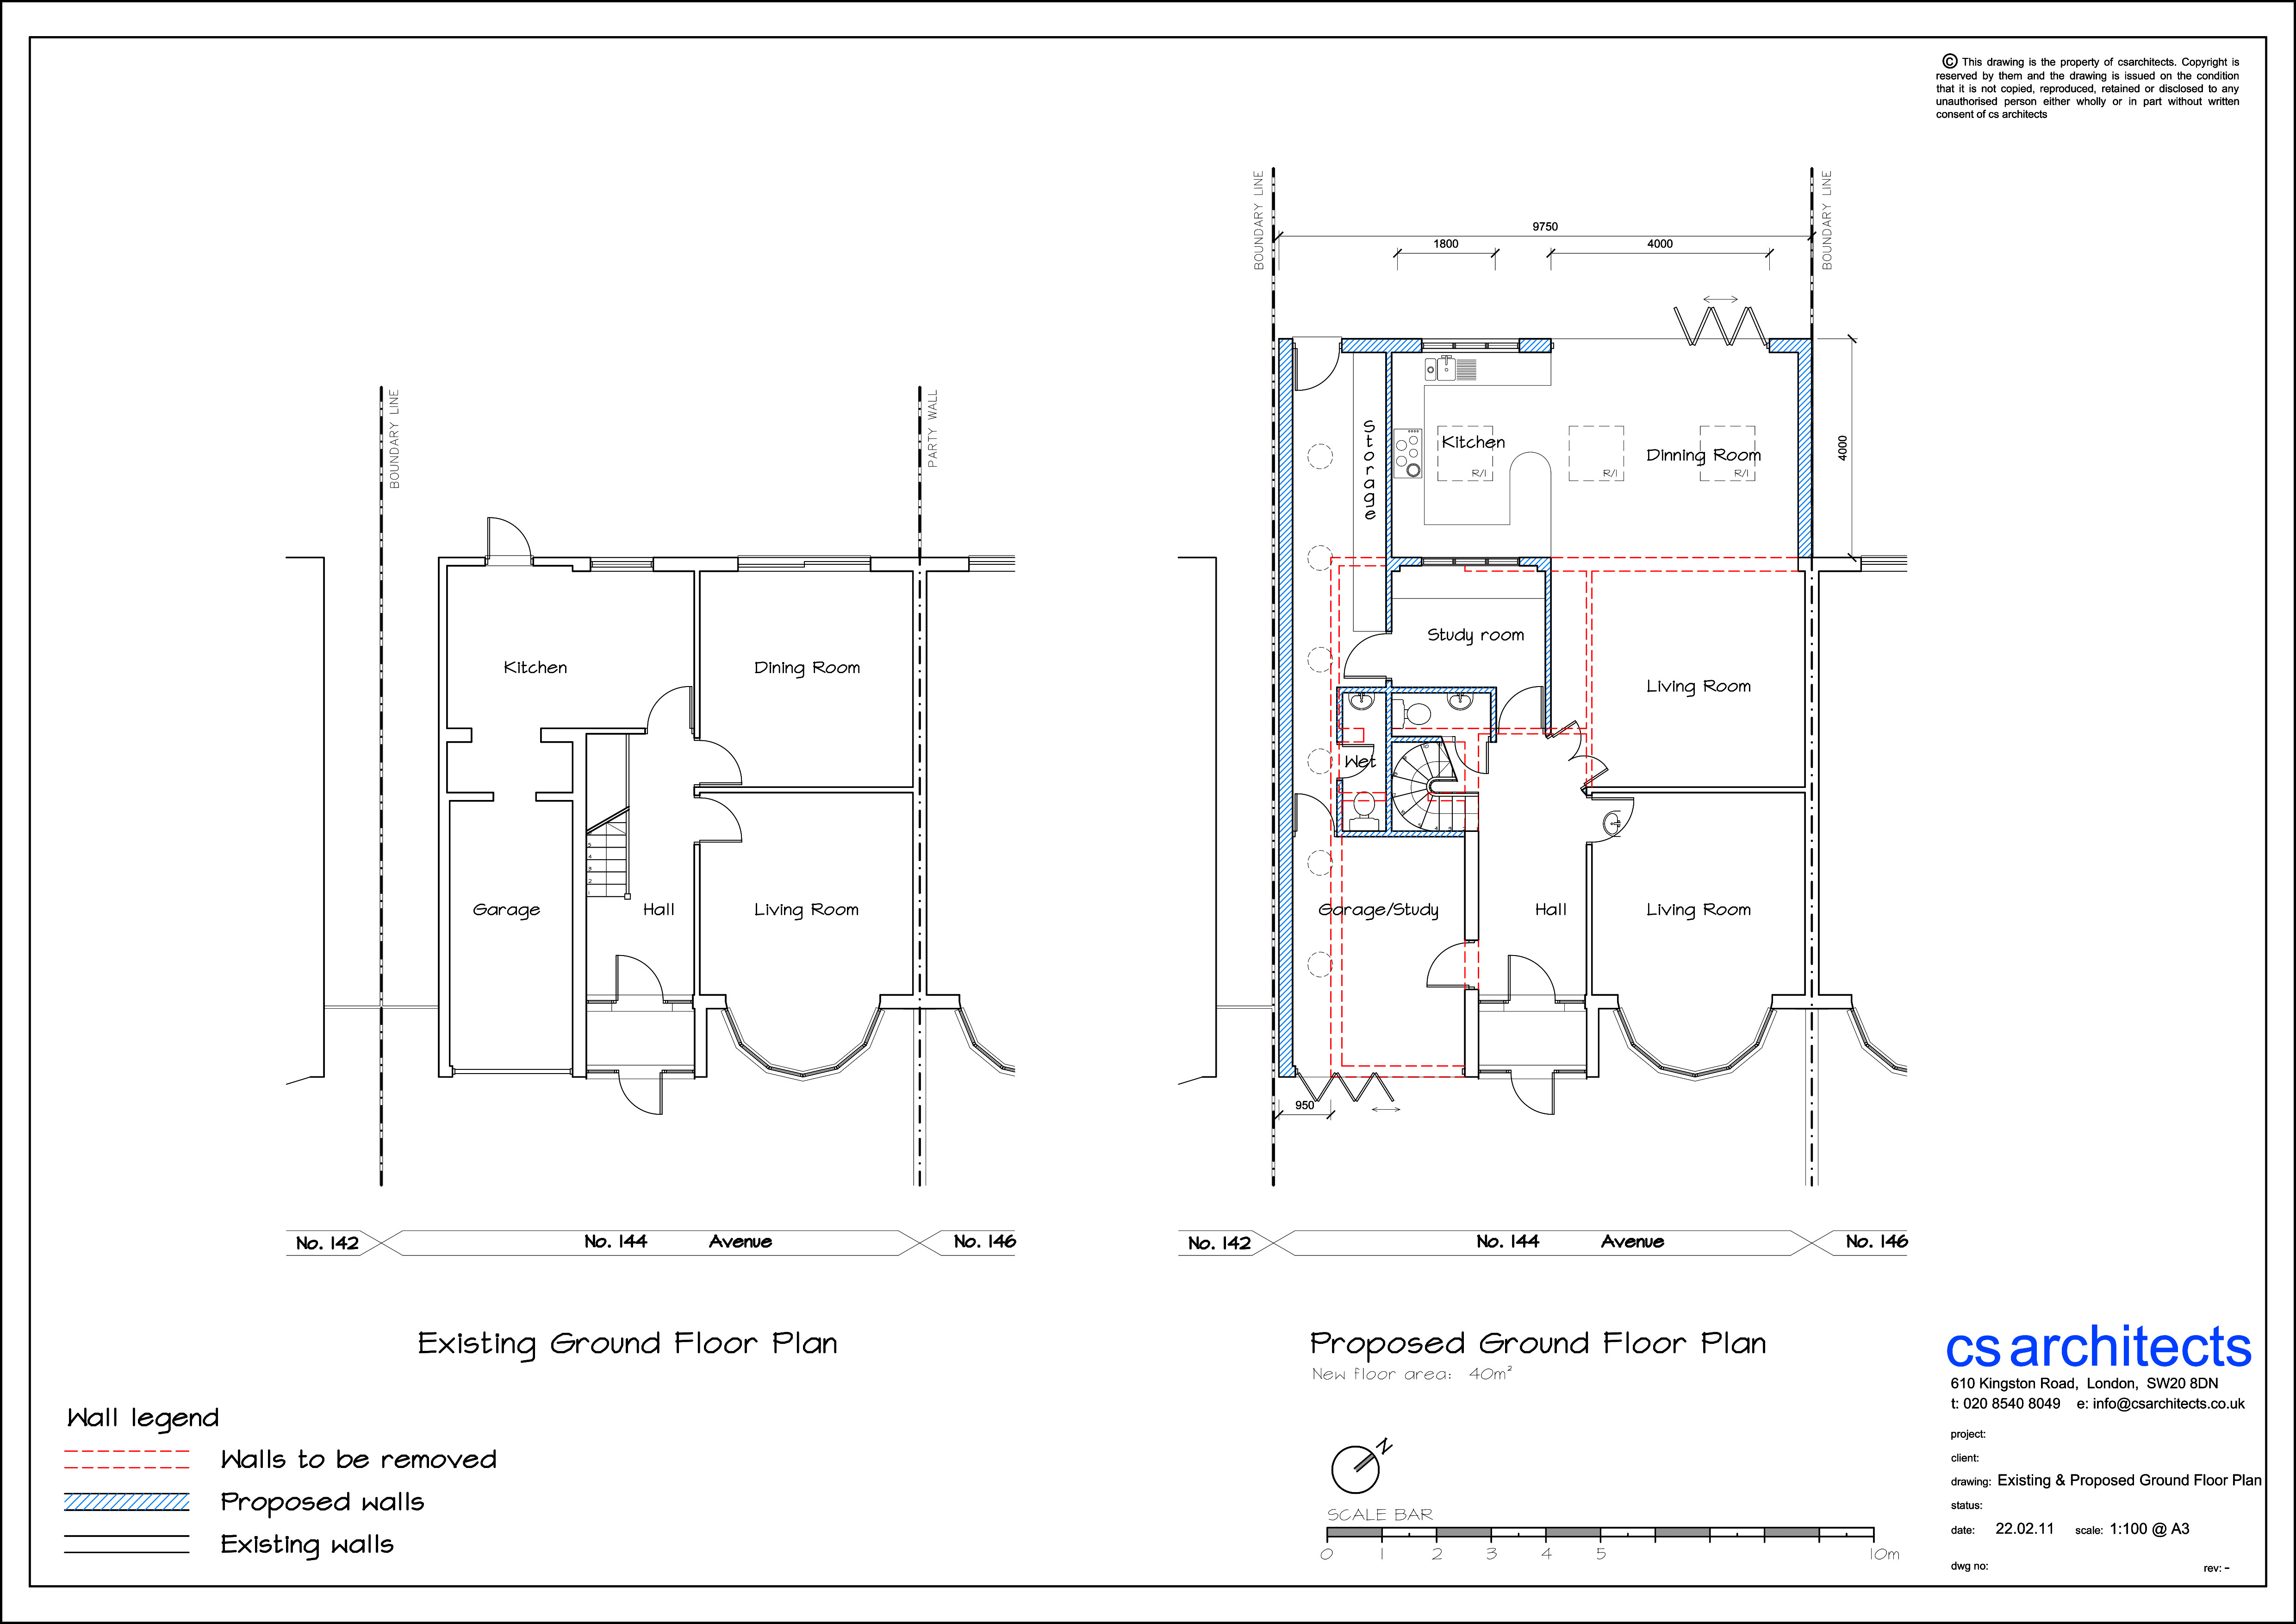 existing and proposed ground floor plan planning application surrey united kingdom - Floor Plan Application